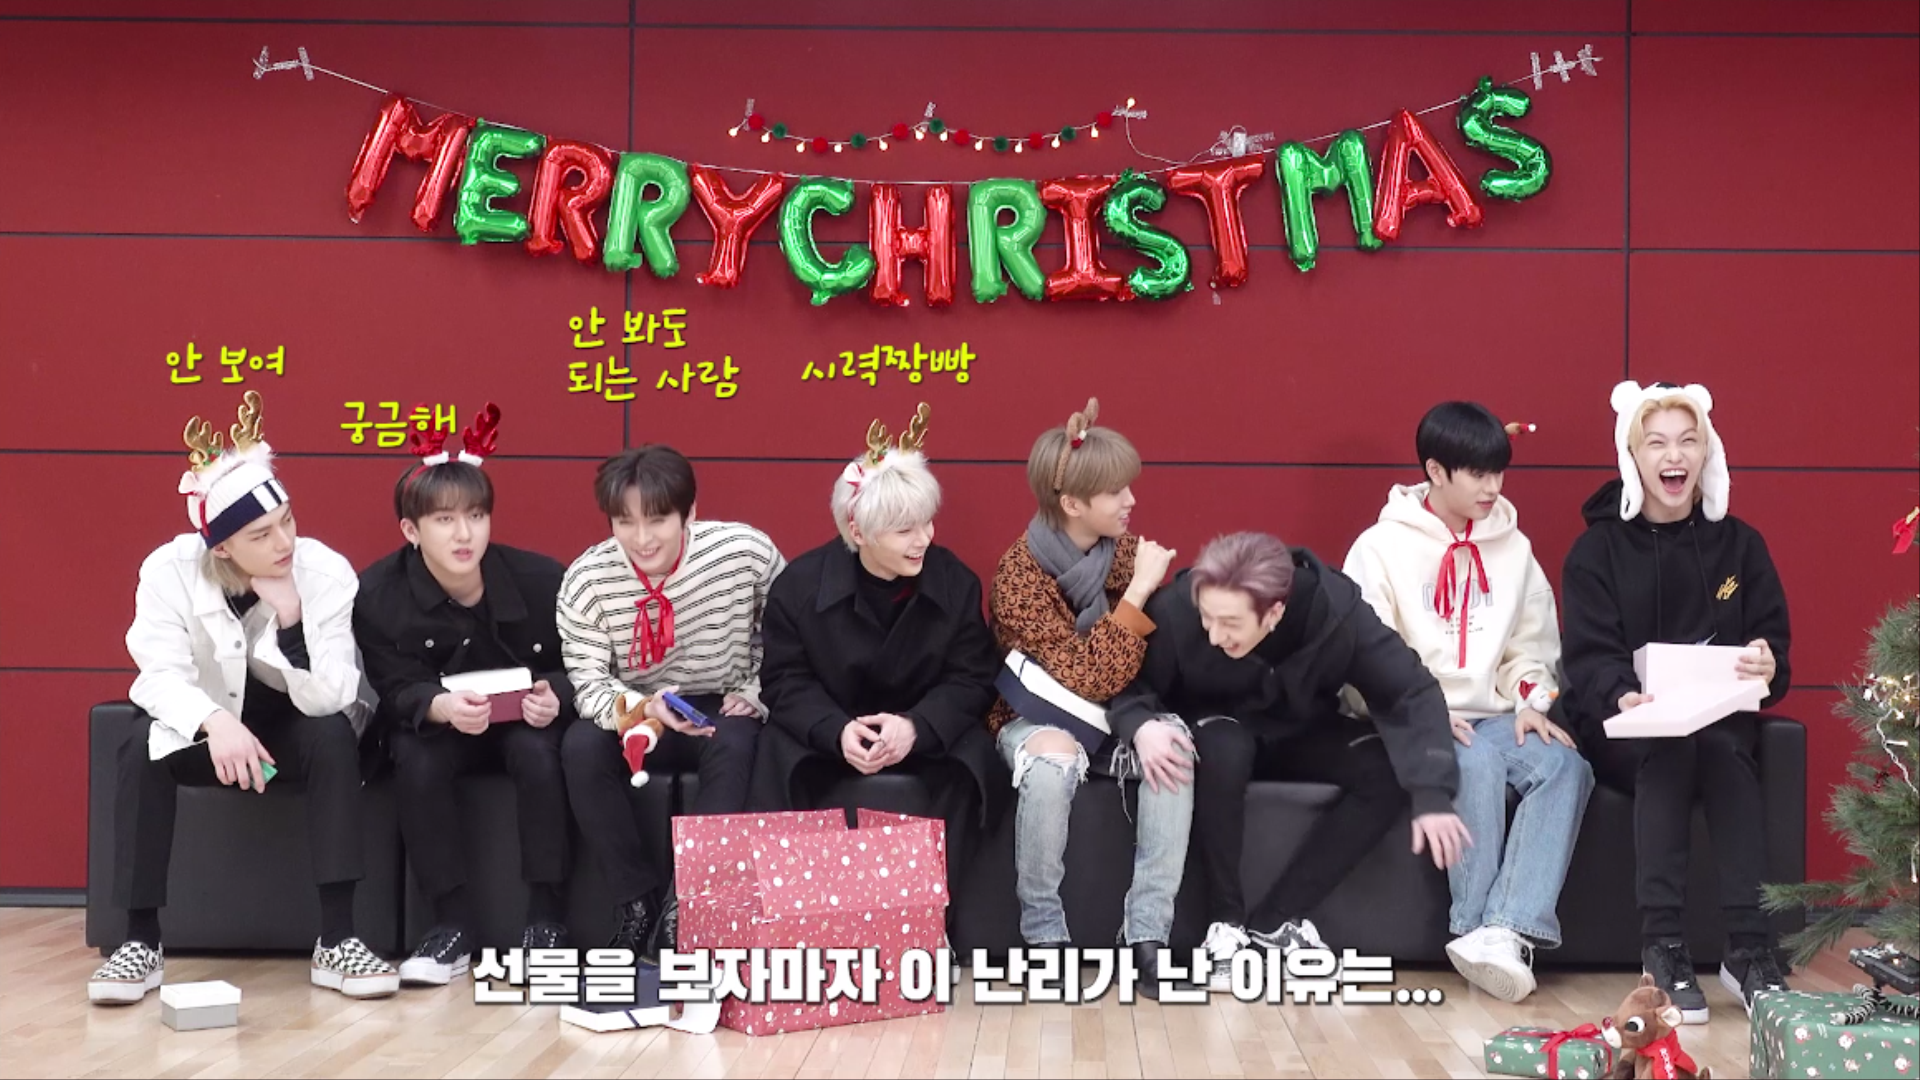 Merry Christmas with SKZ-Manito🎄❤